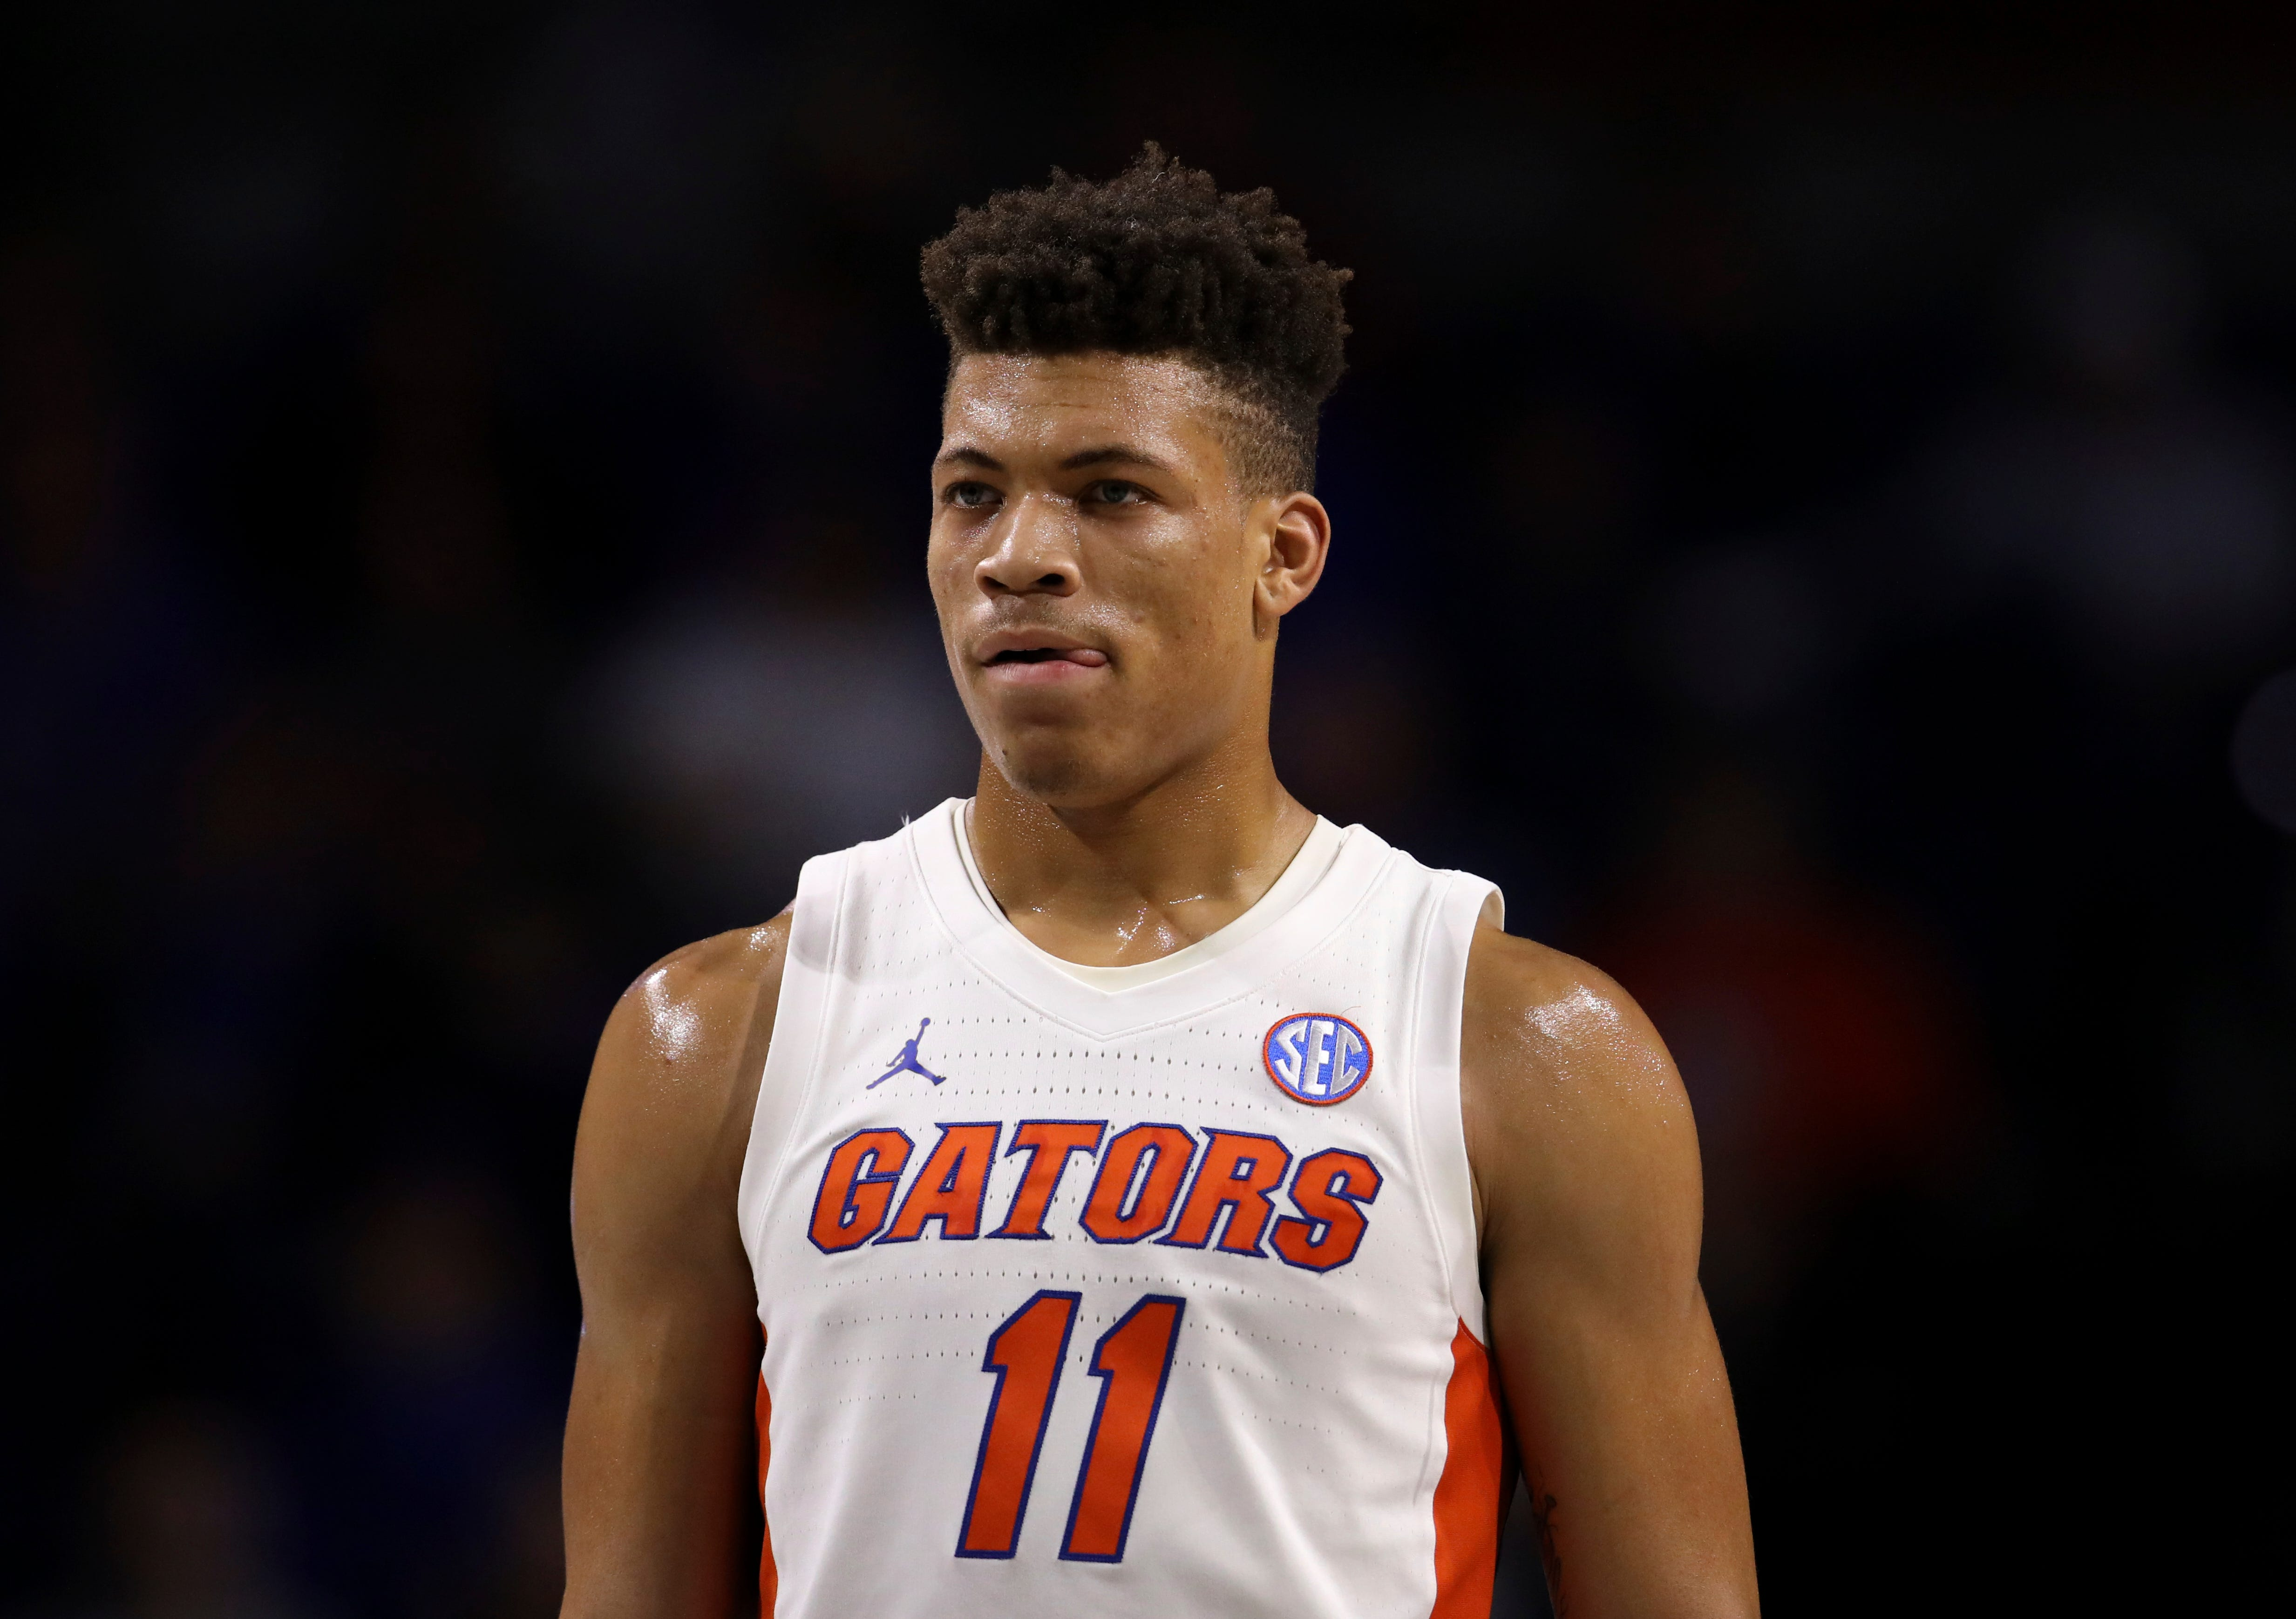 Florida's Keyontae Johnson 'following simple commands' after coma